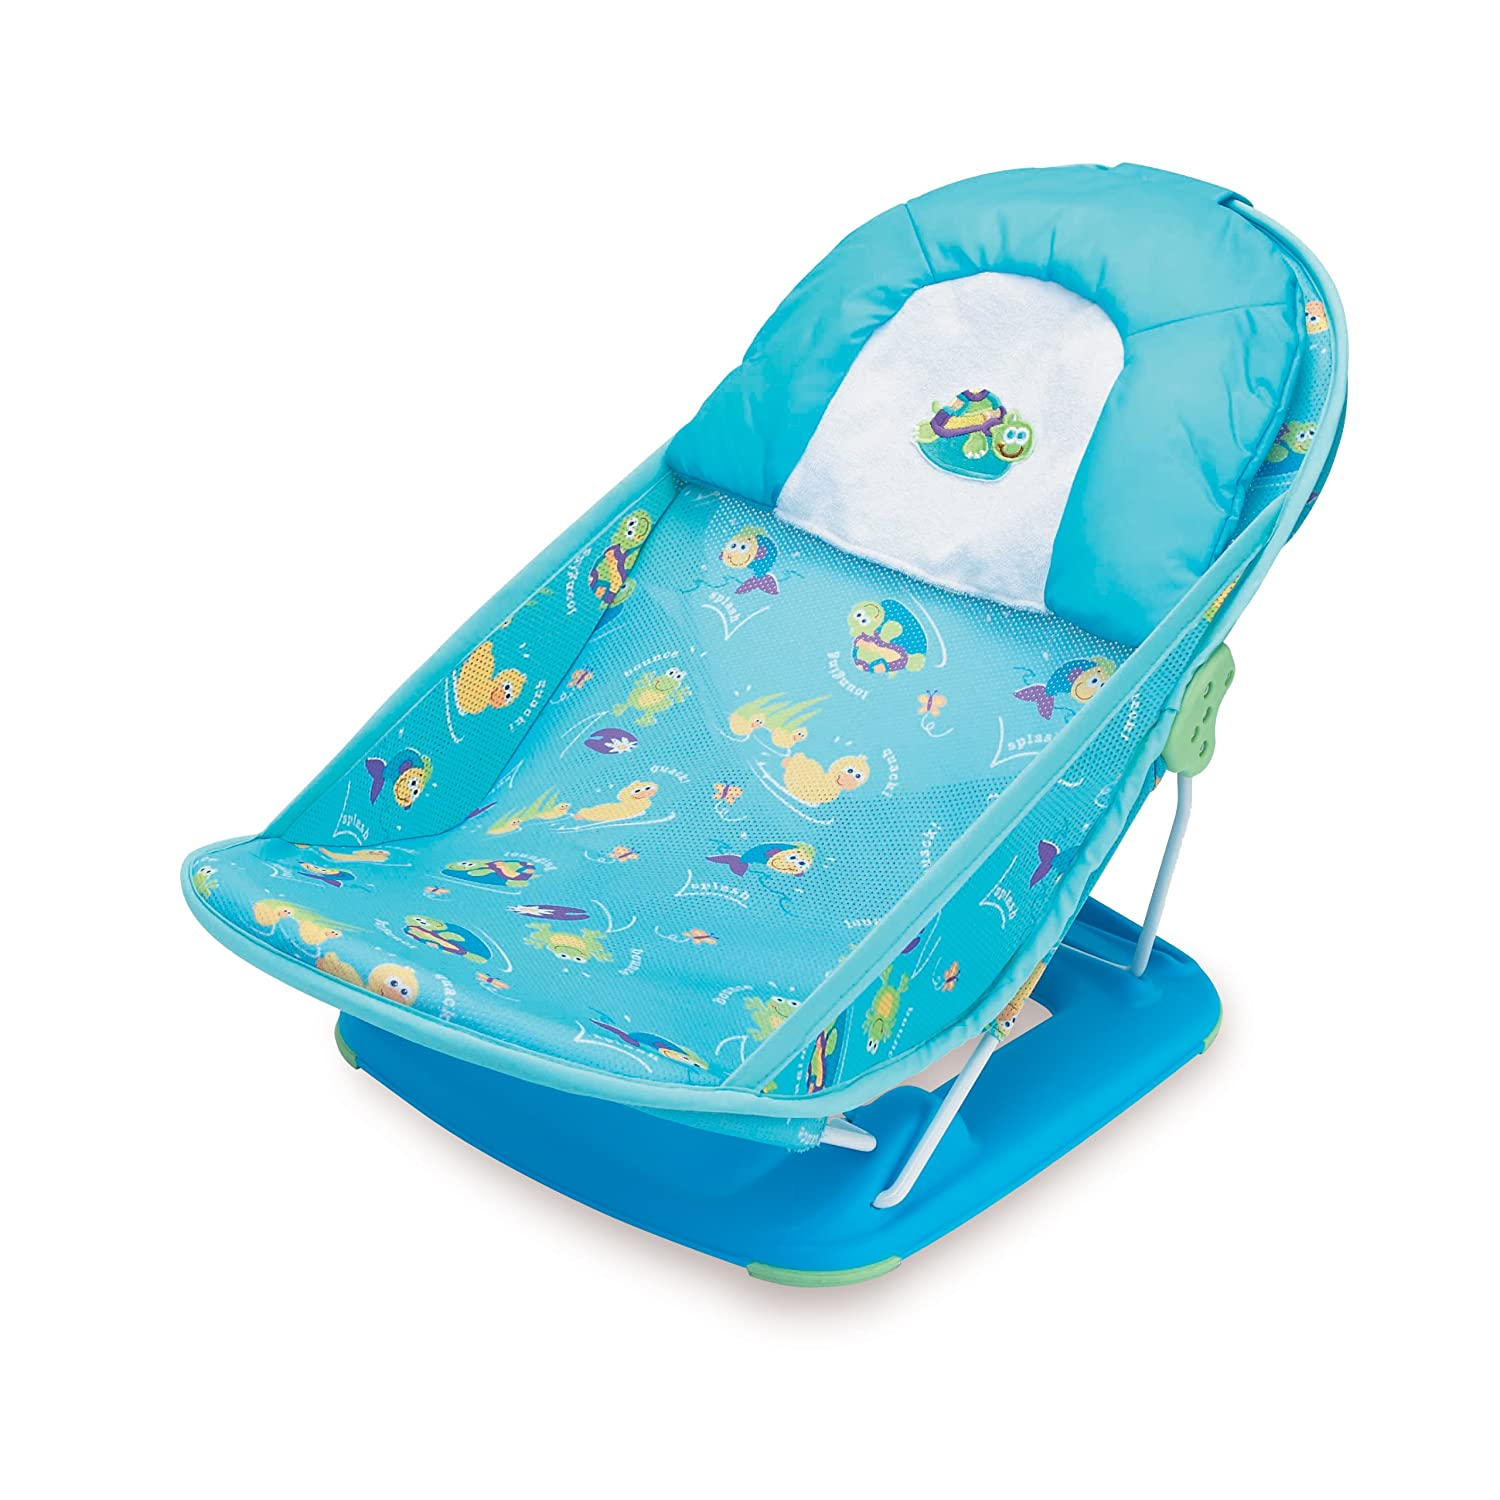 baby bath chairs swivel chair for van hey jude what works us favorite stuff 3 months